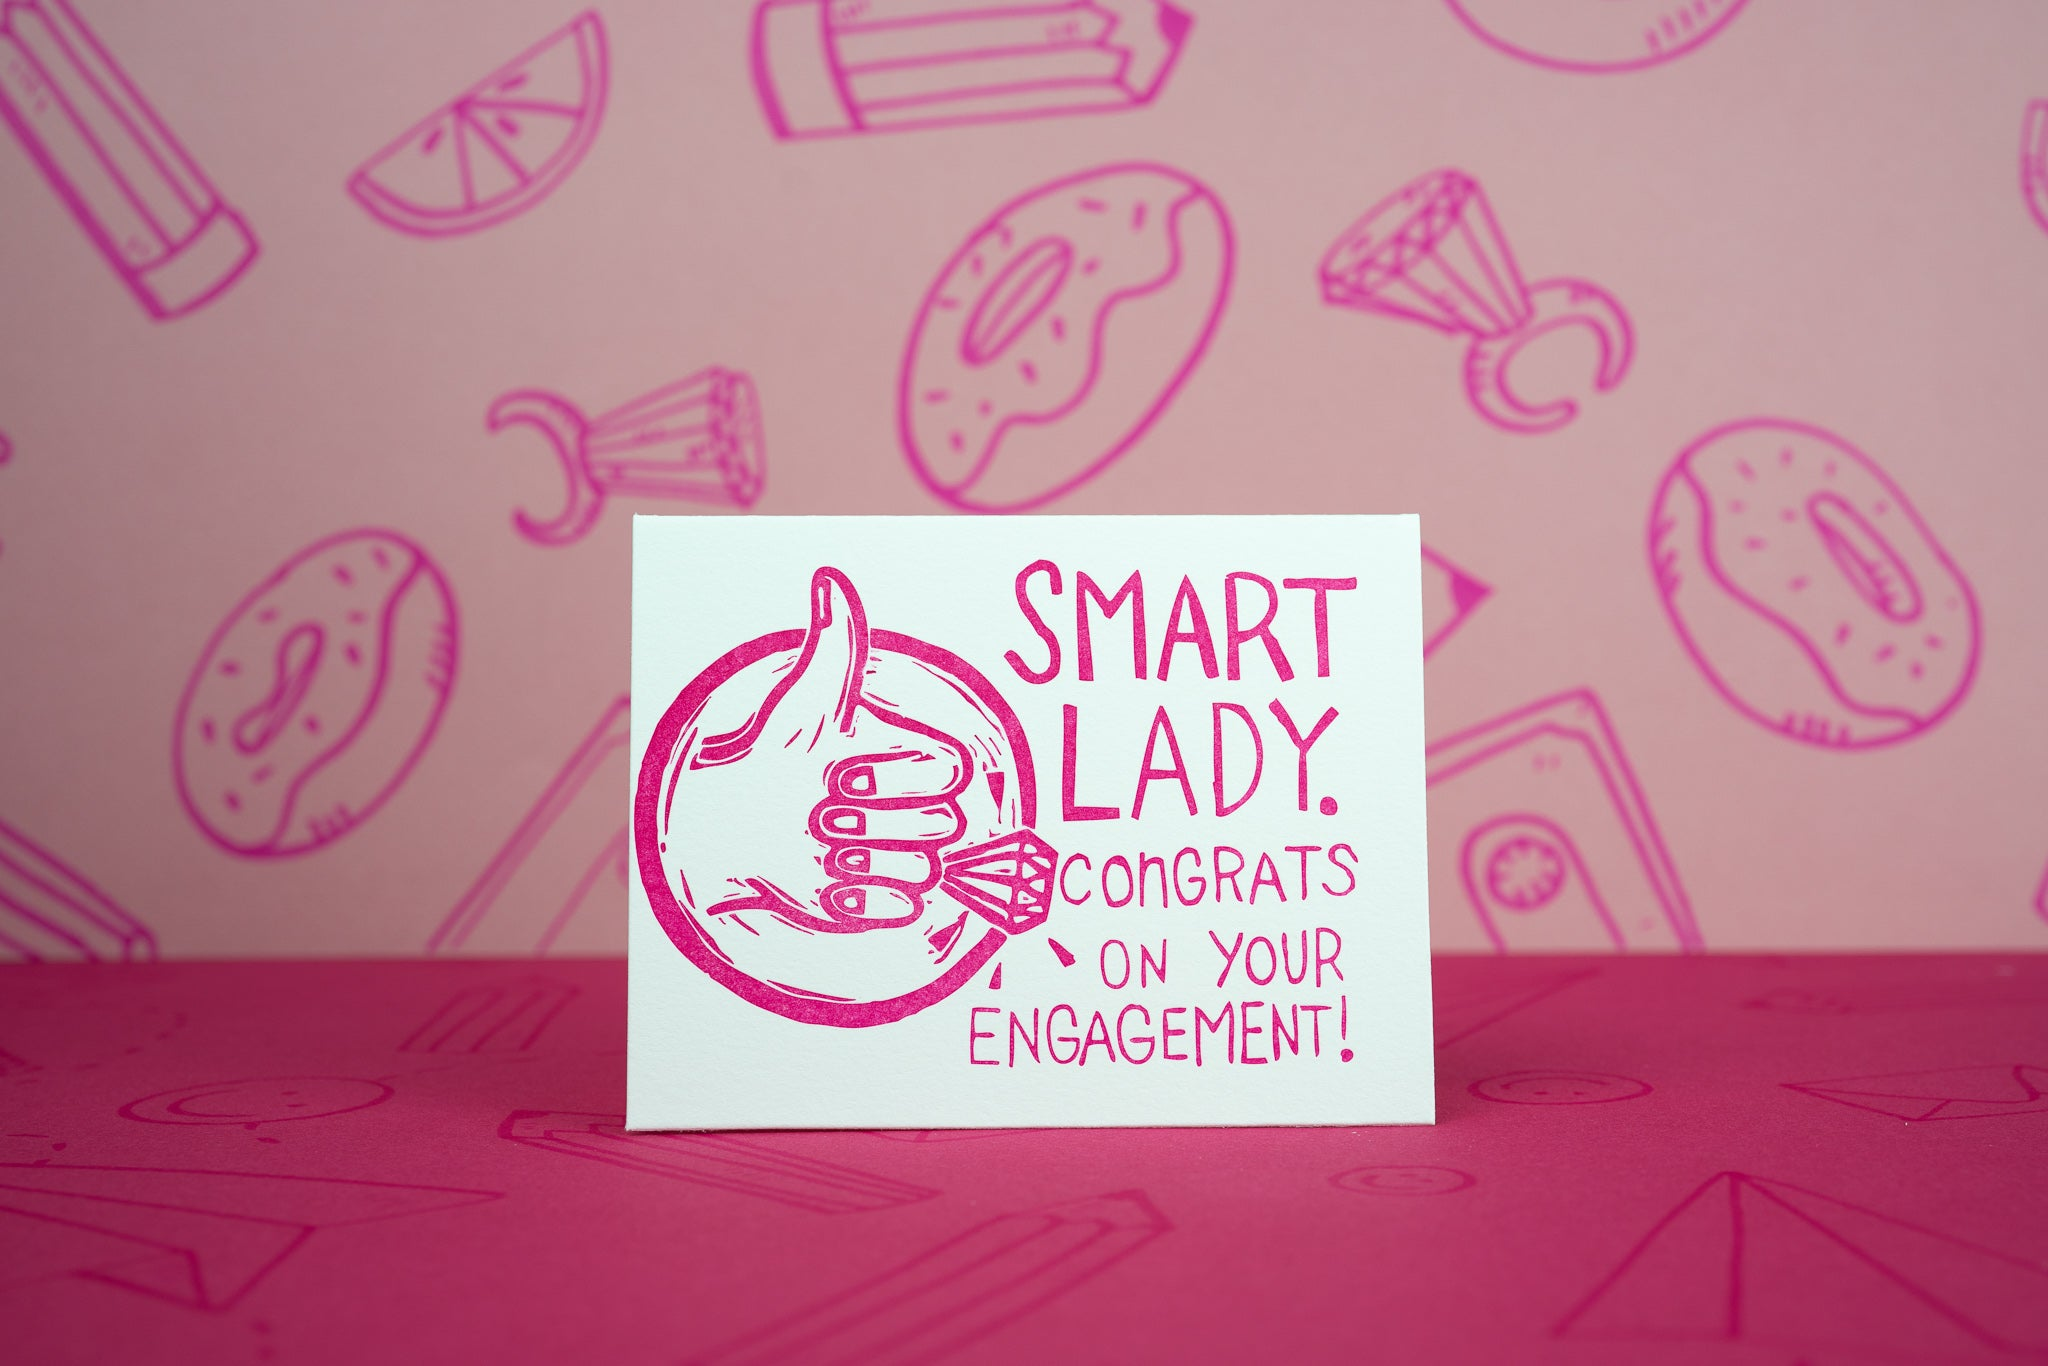 Smart Lady Engagement Card